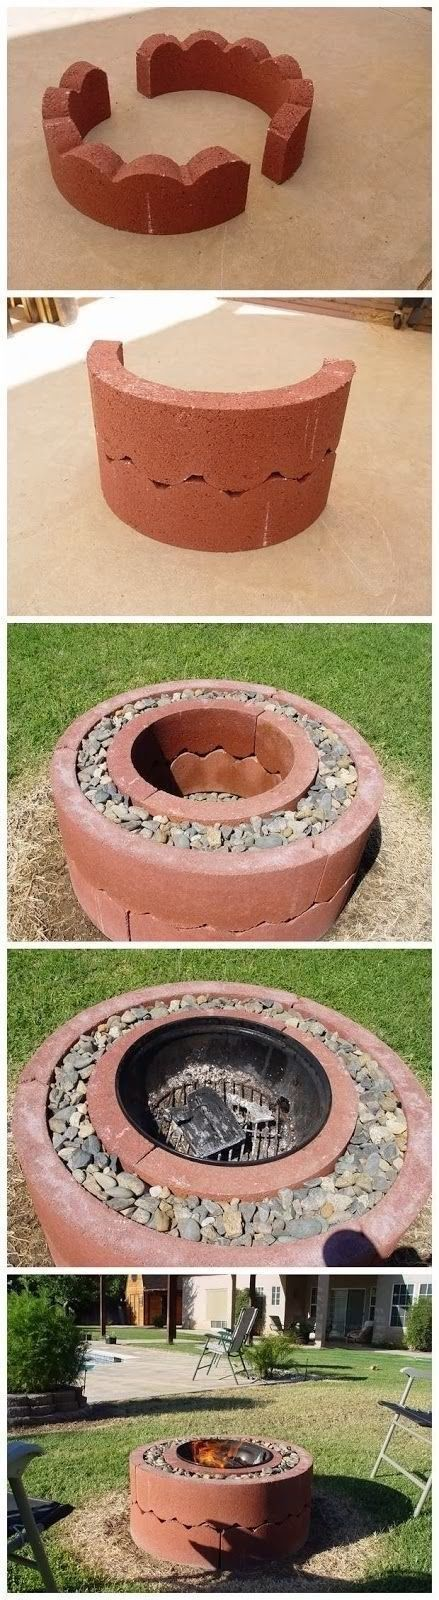 Easy Peasy Fire Pit                                                                                                                                                      More